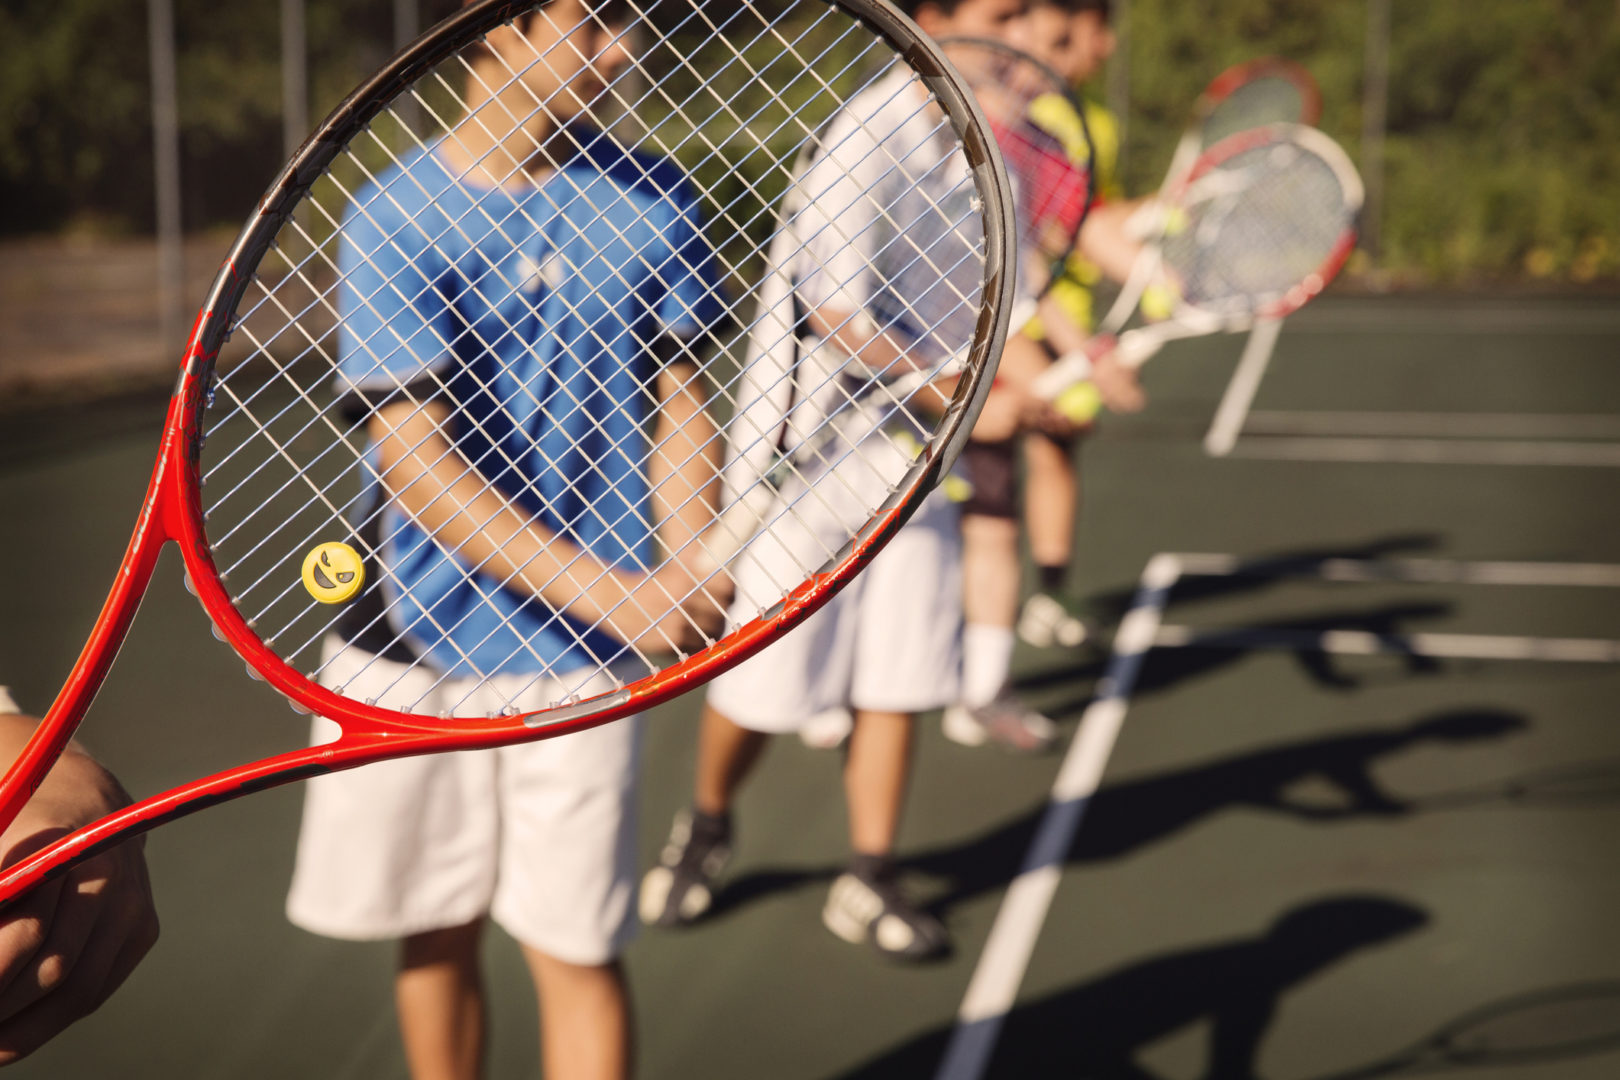 The best sports for kids — and how to find the right one for your child